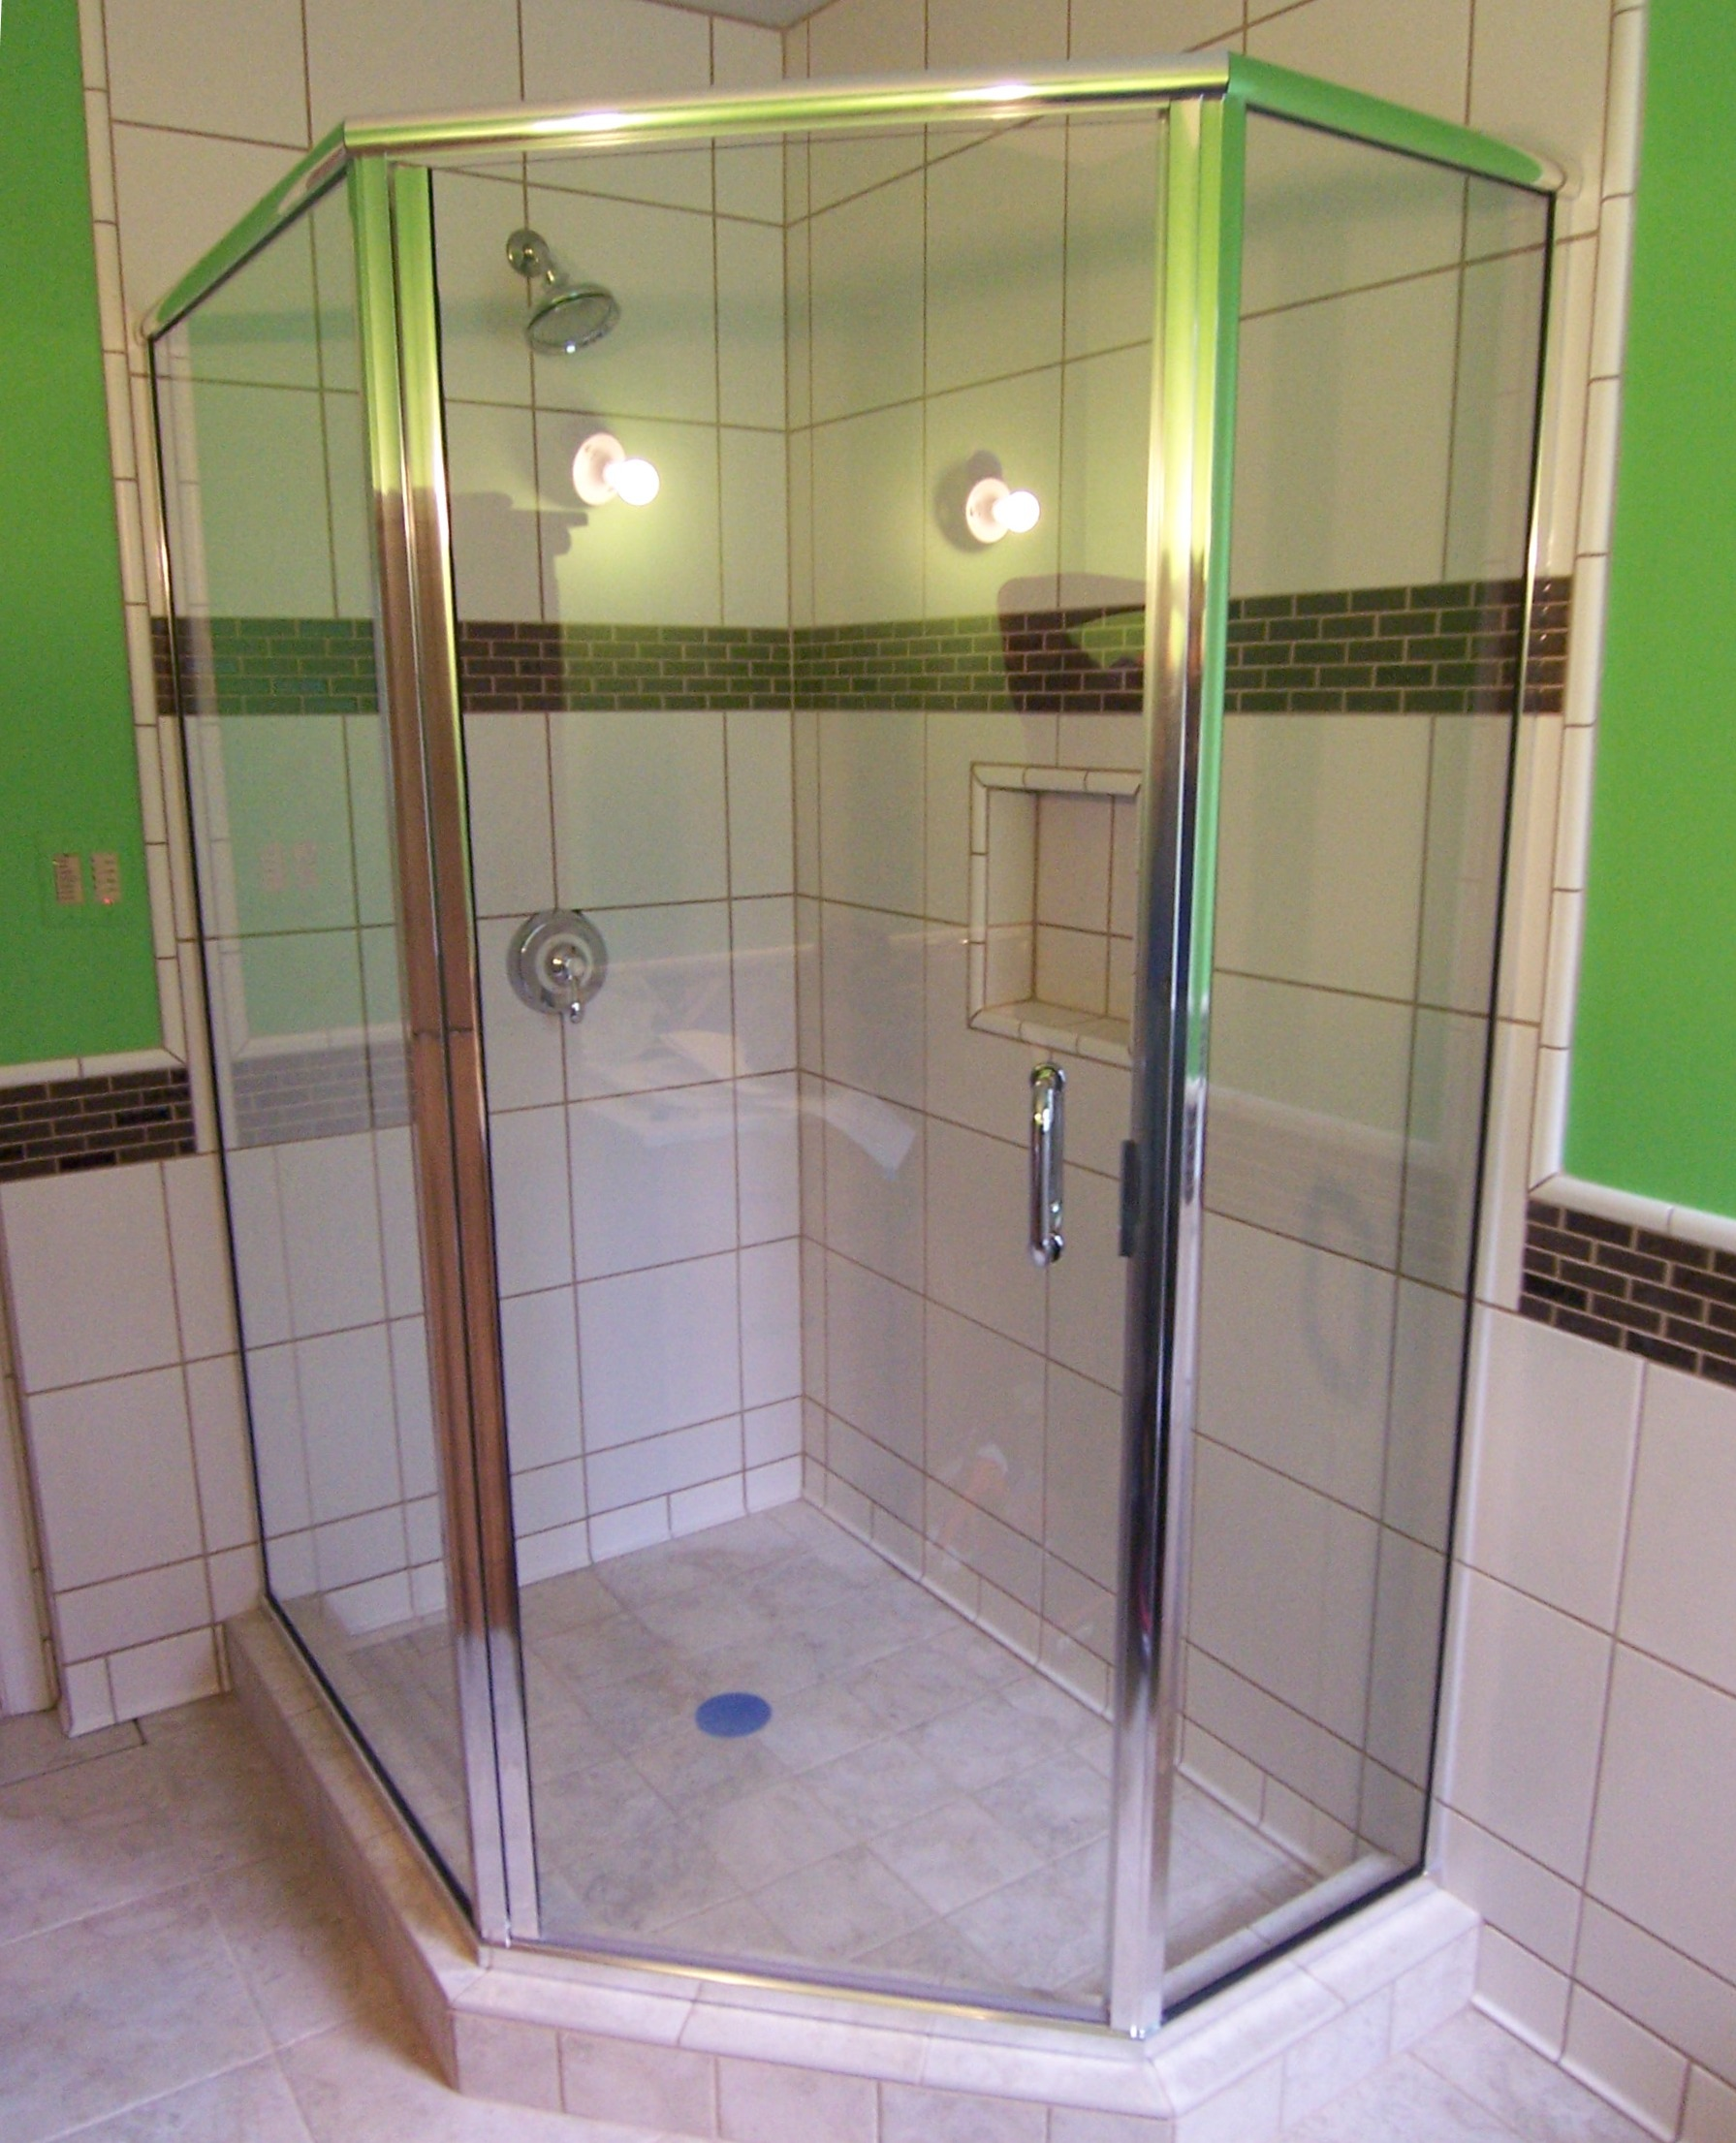 of showers and a design bronze images is throwback bit enclosures door enclosure frameless doors this semi yesterday shower s imageglassworks framed to glass best enclosu